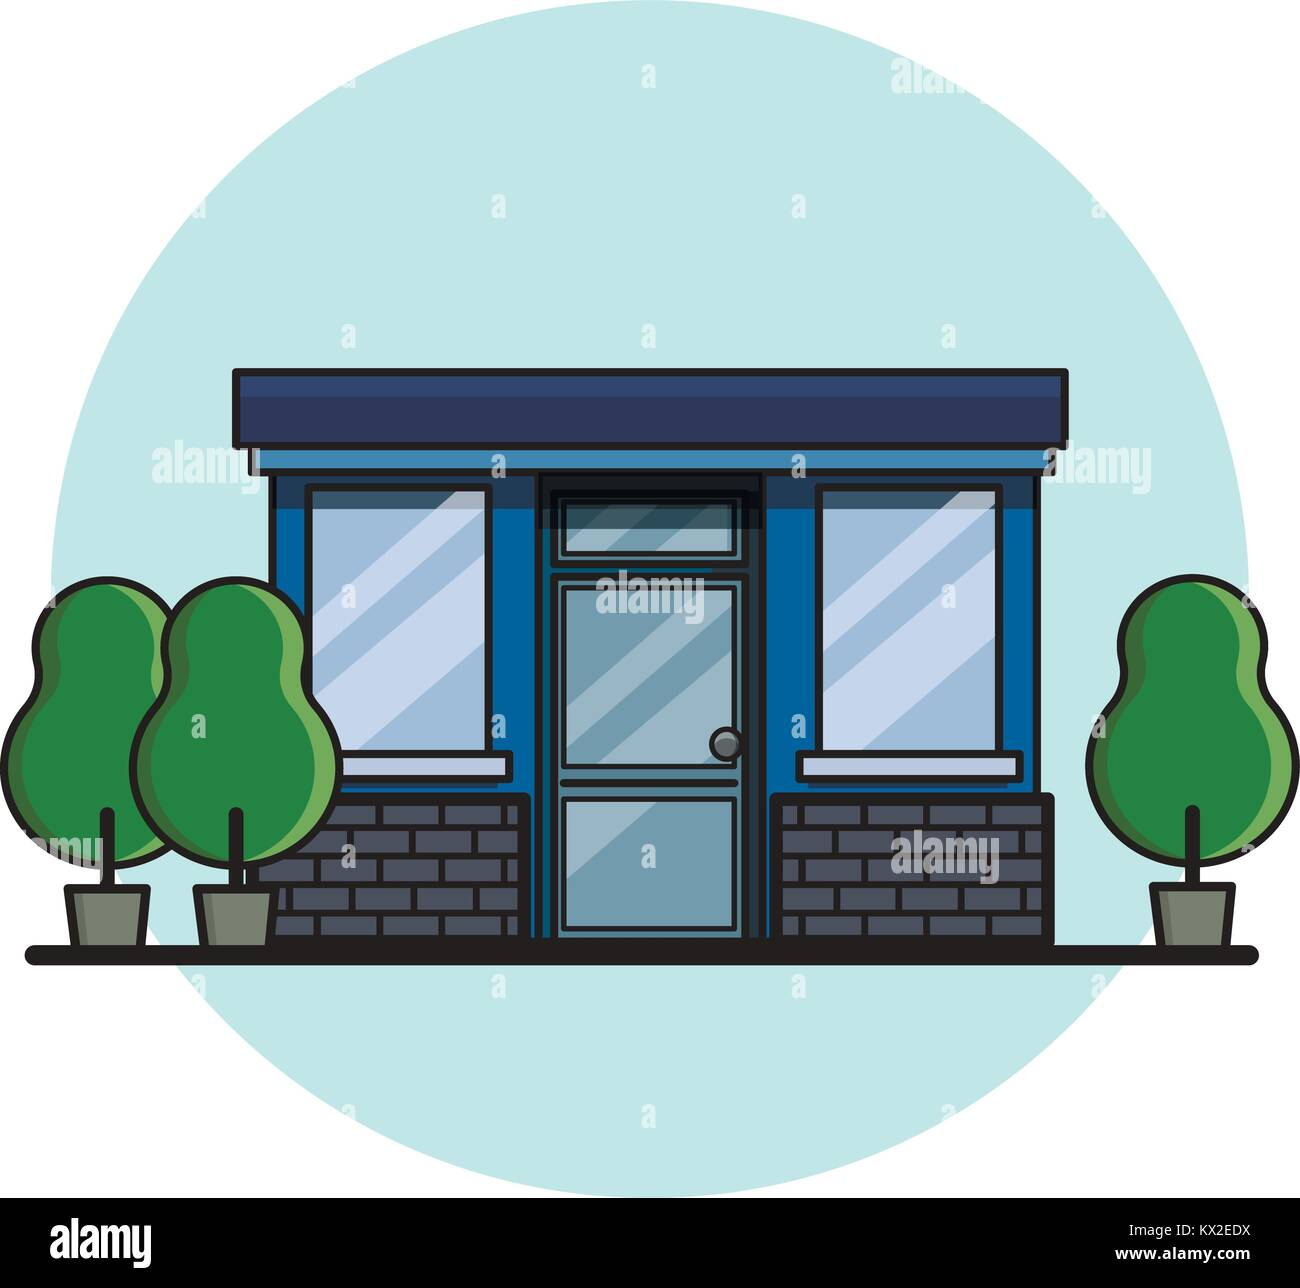 Cafe building. Flat style, vector illustration. - Stock Vector